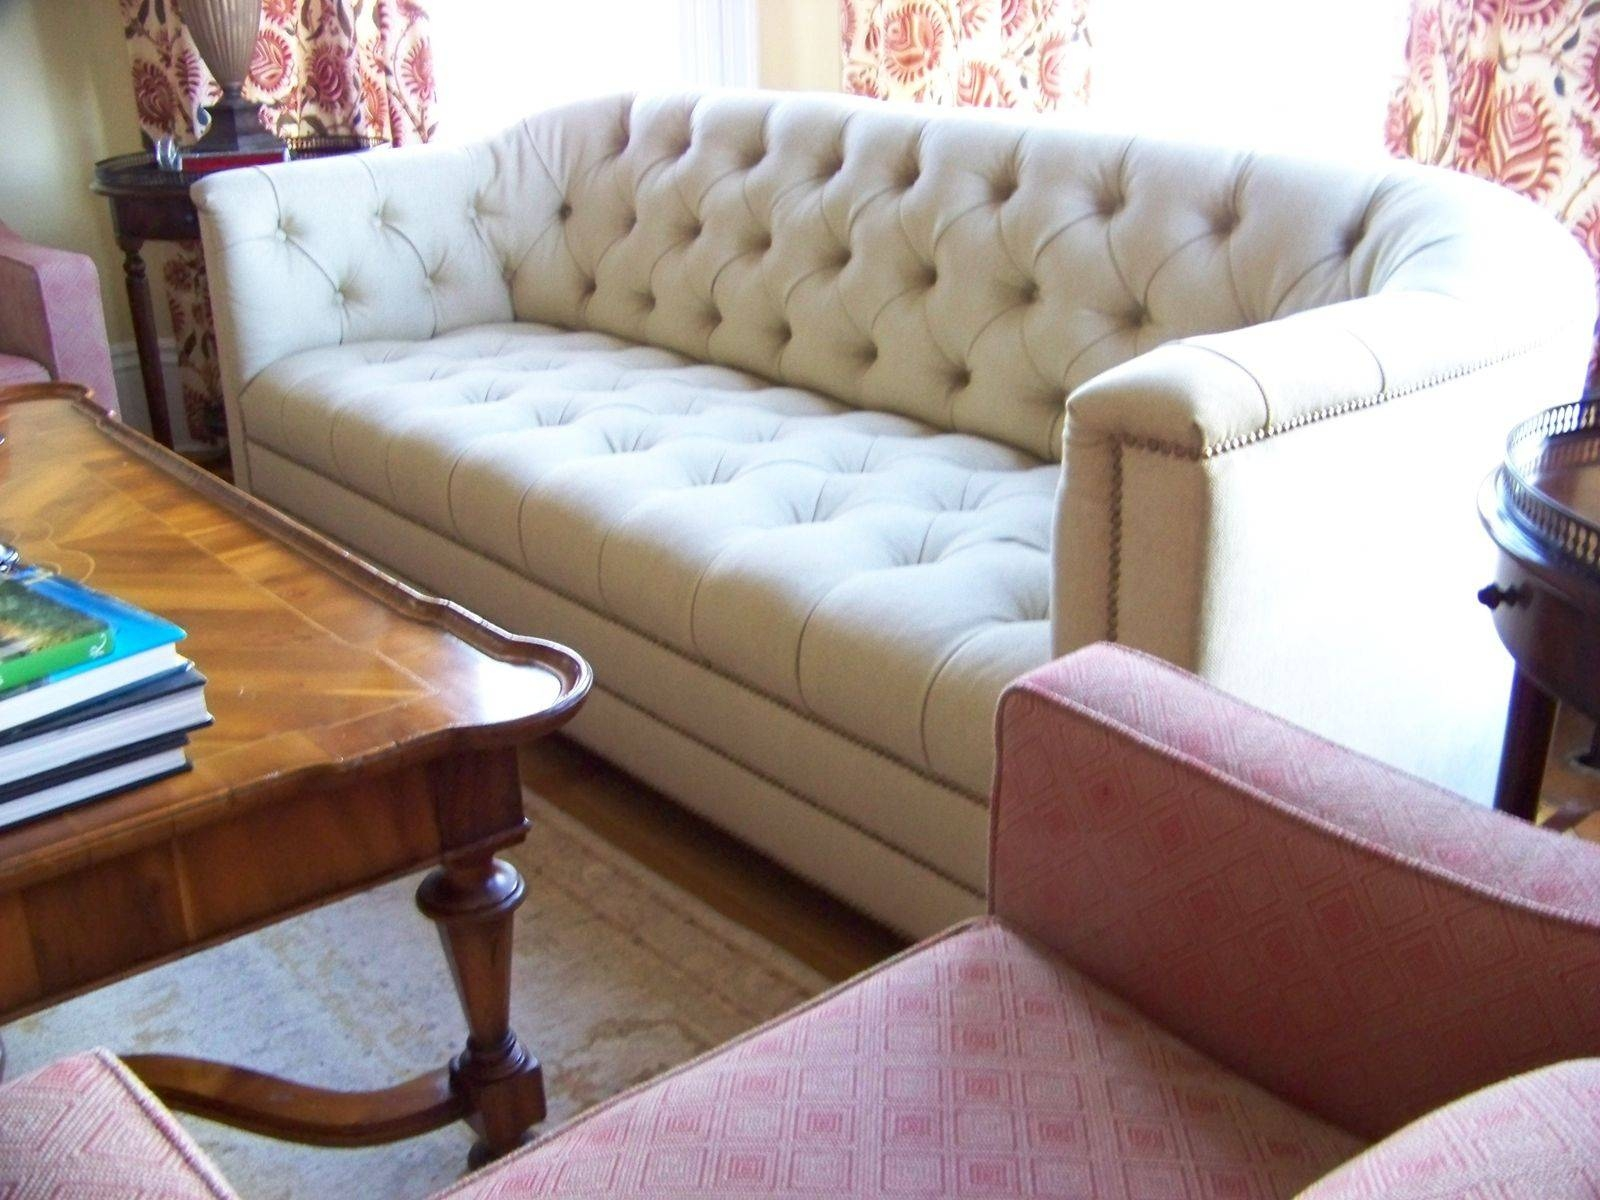 Custom Sofas | Sectional And Leather Couches | Custommade throughout Custom Made Sectional Sofas (Image 10 of 30)